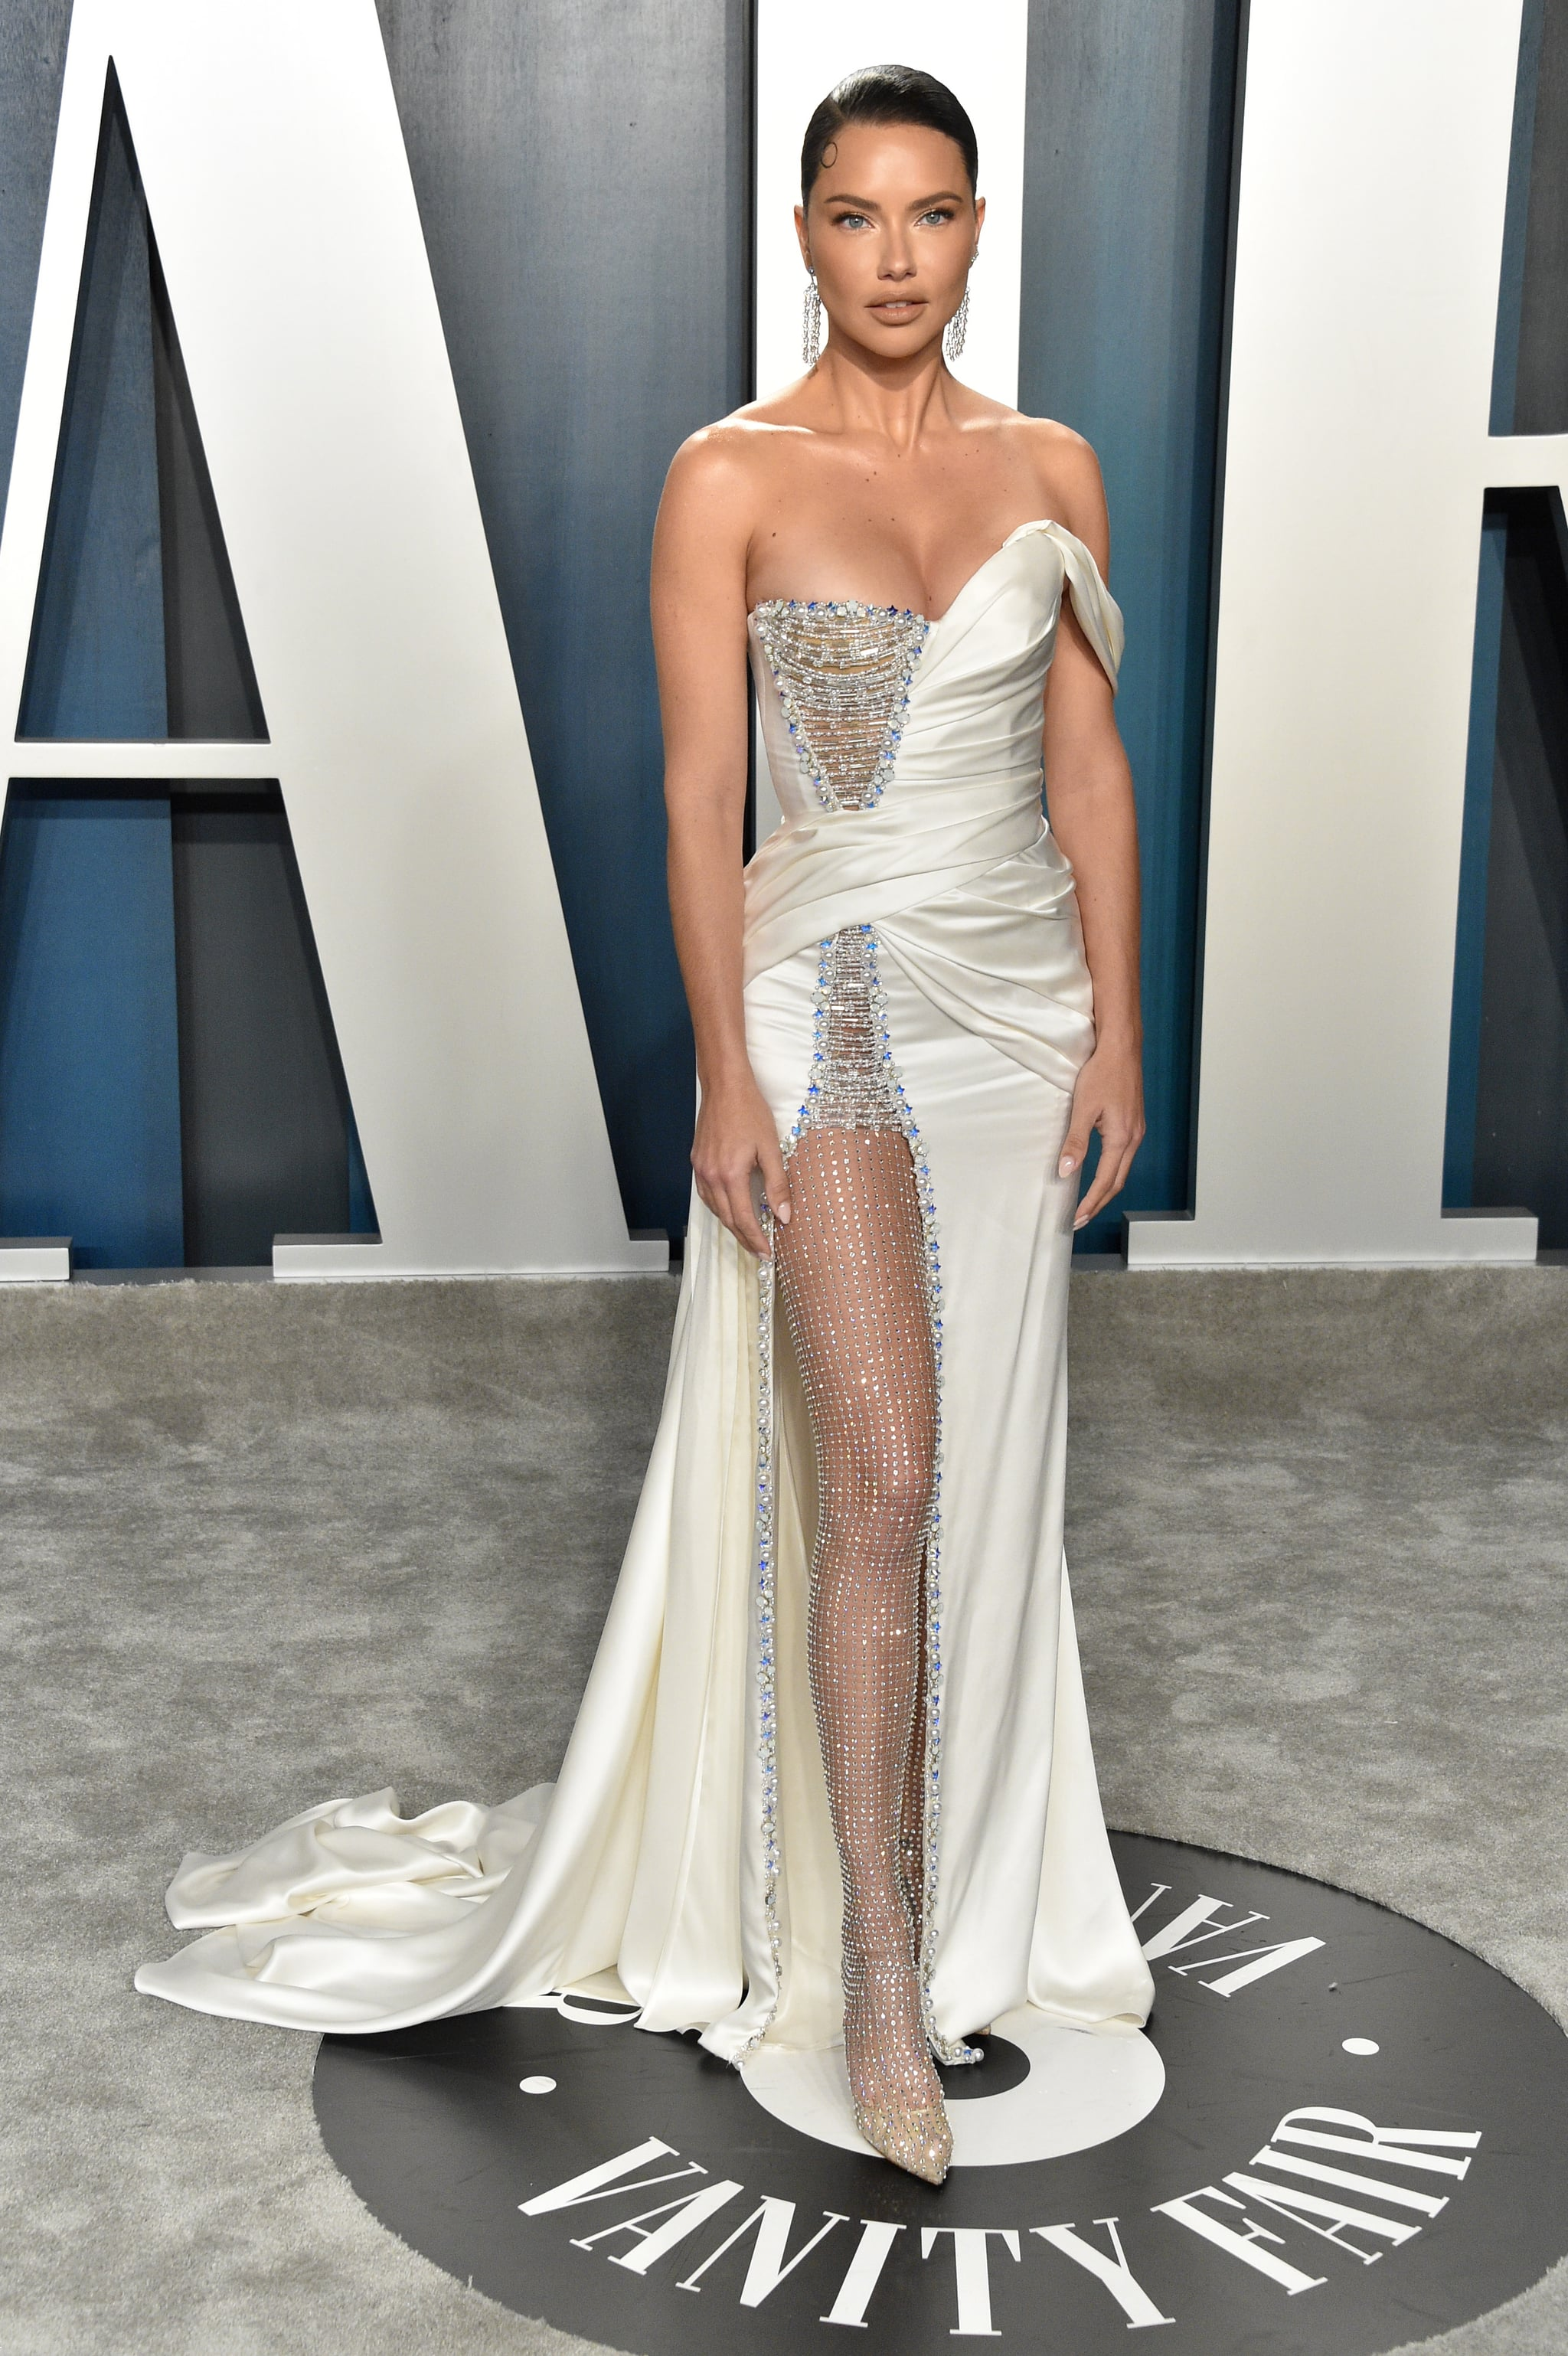 Best Oscars Afterparty Dresses 2020 Popsugar Fashion,Princess Ball Gown Wedding Dresses With Sweetheart Neckline And Bling